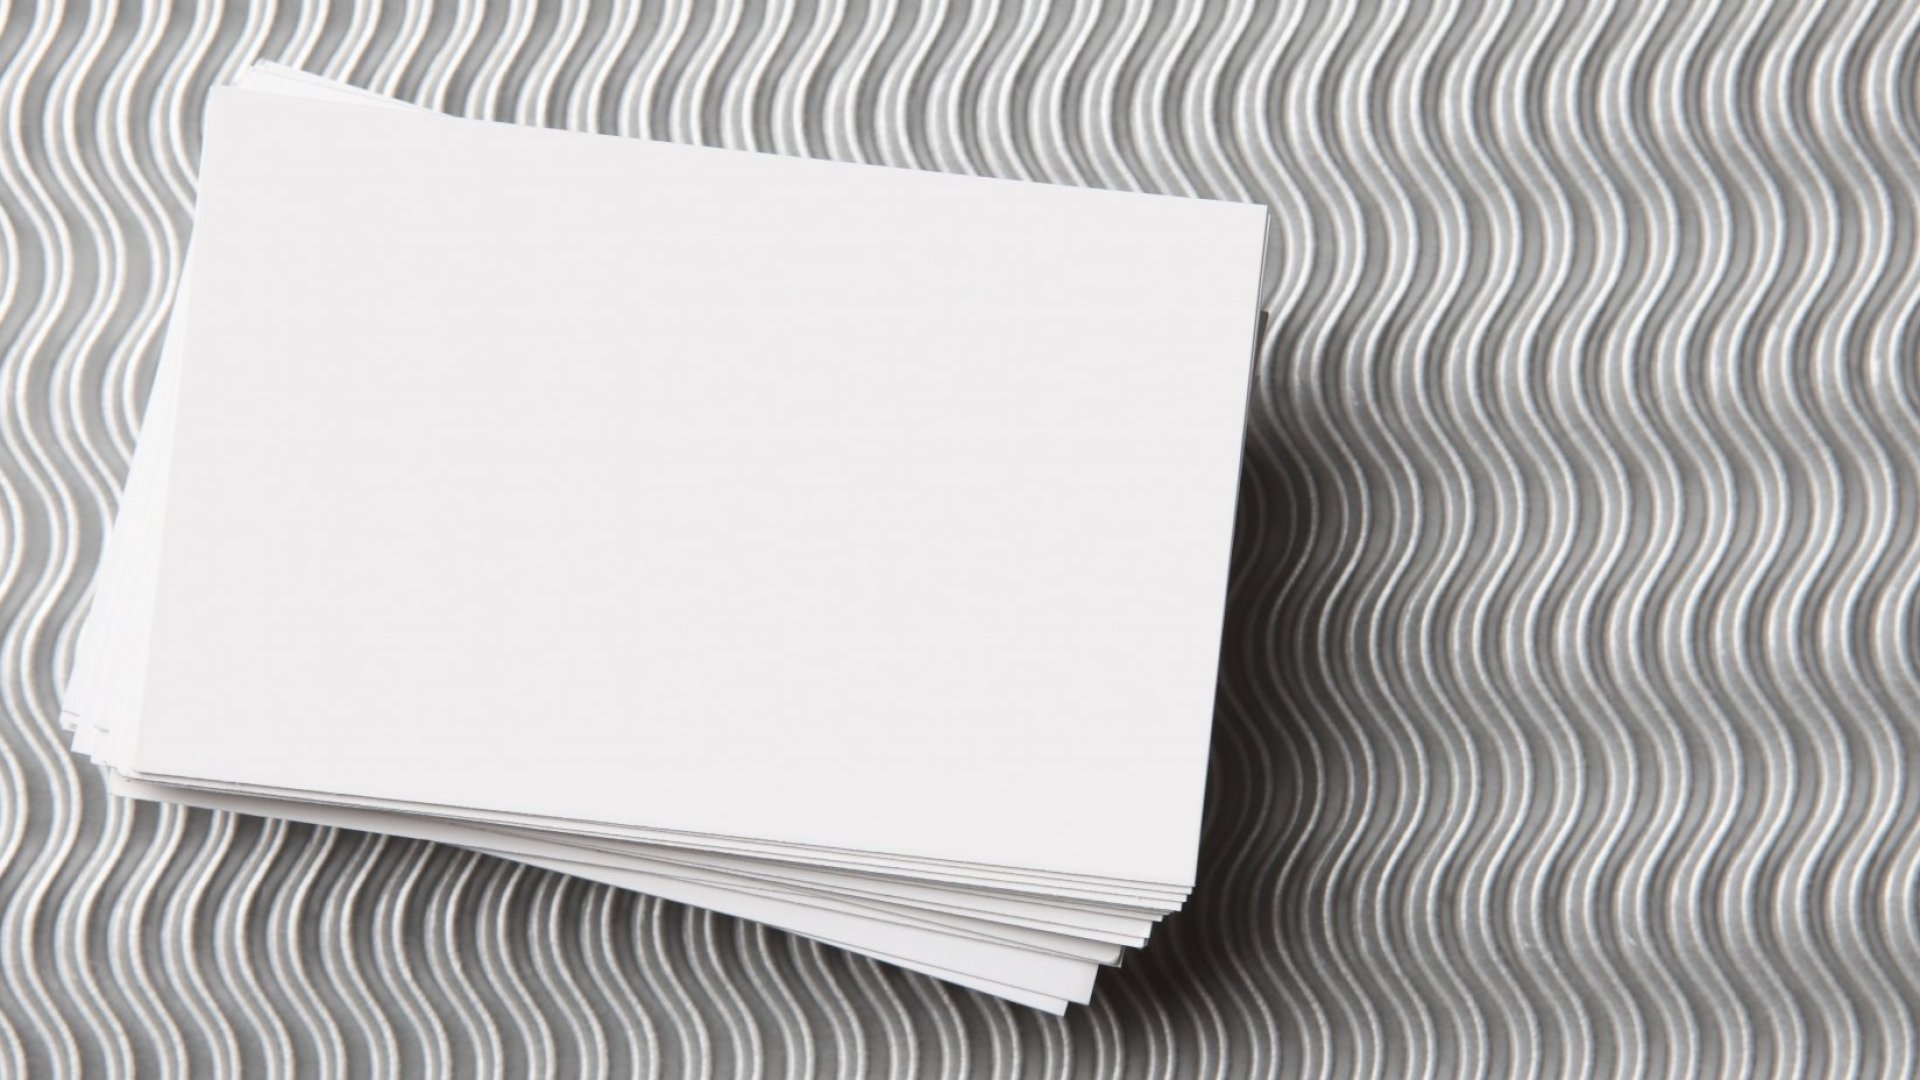 One of the best ways to keep your daily huddles on time: the 3 X 5 index card.